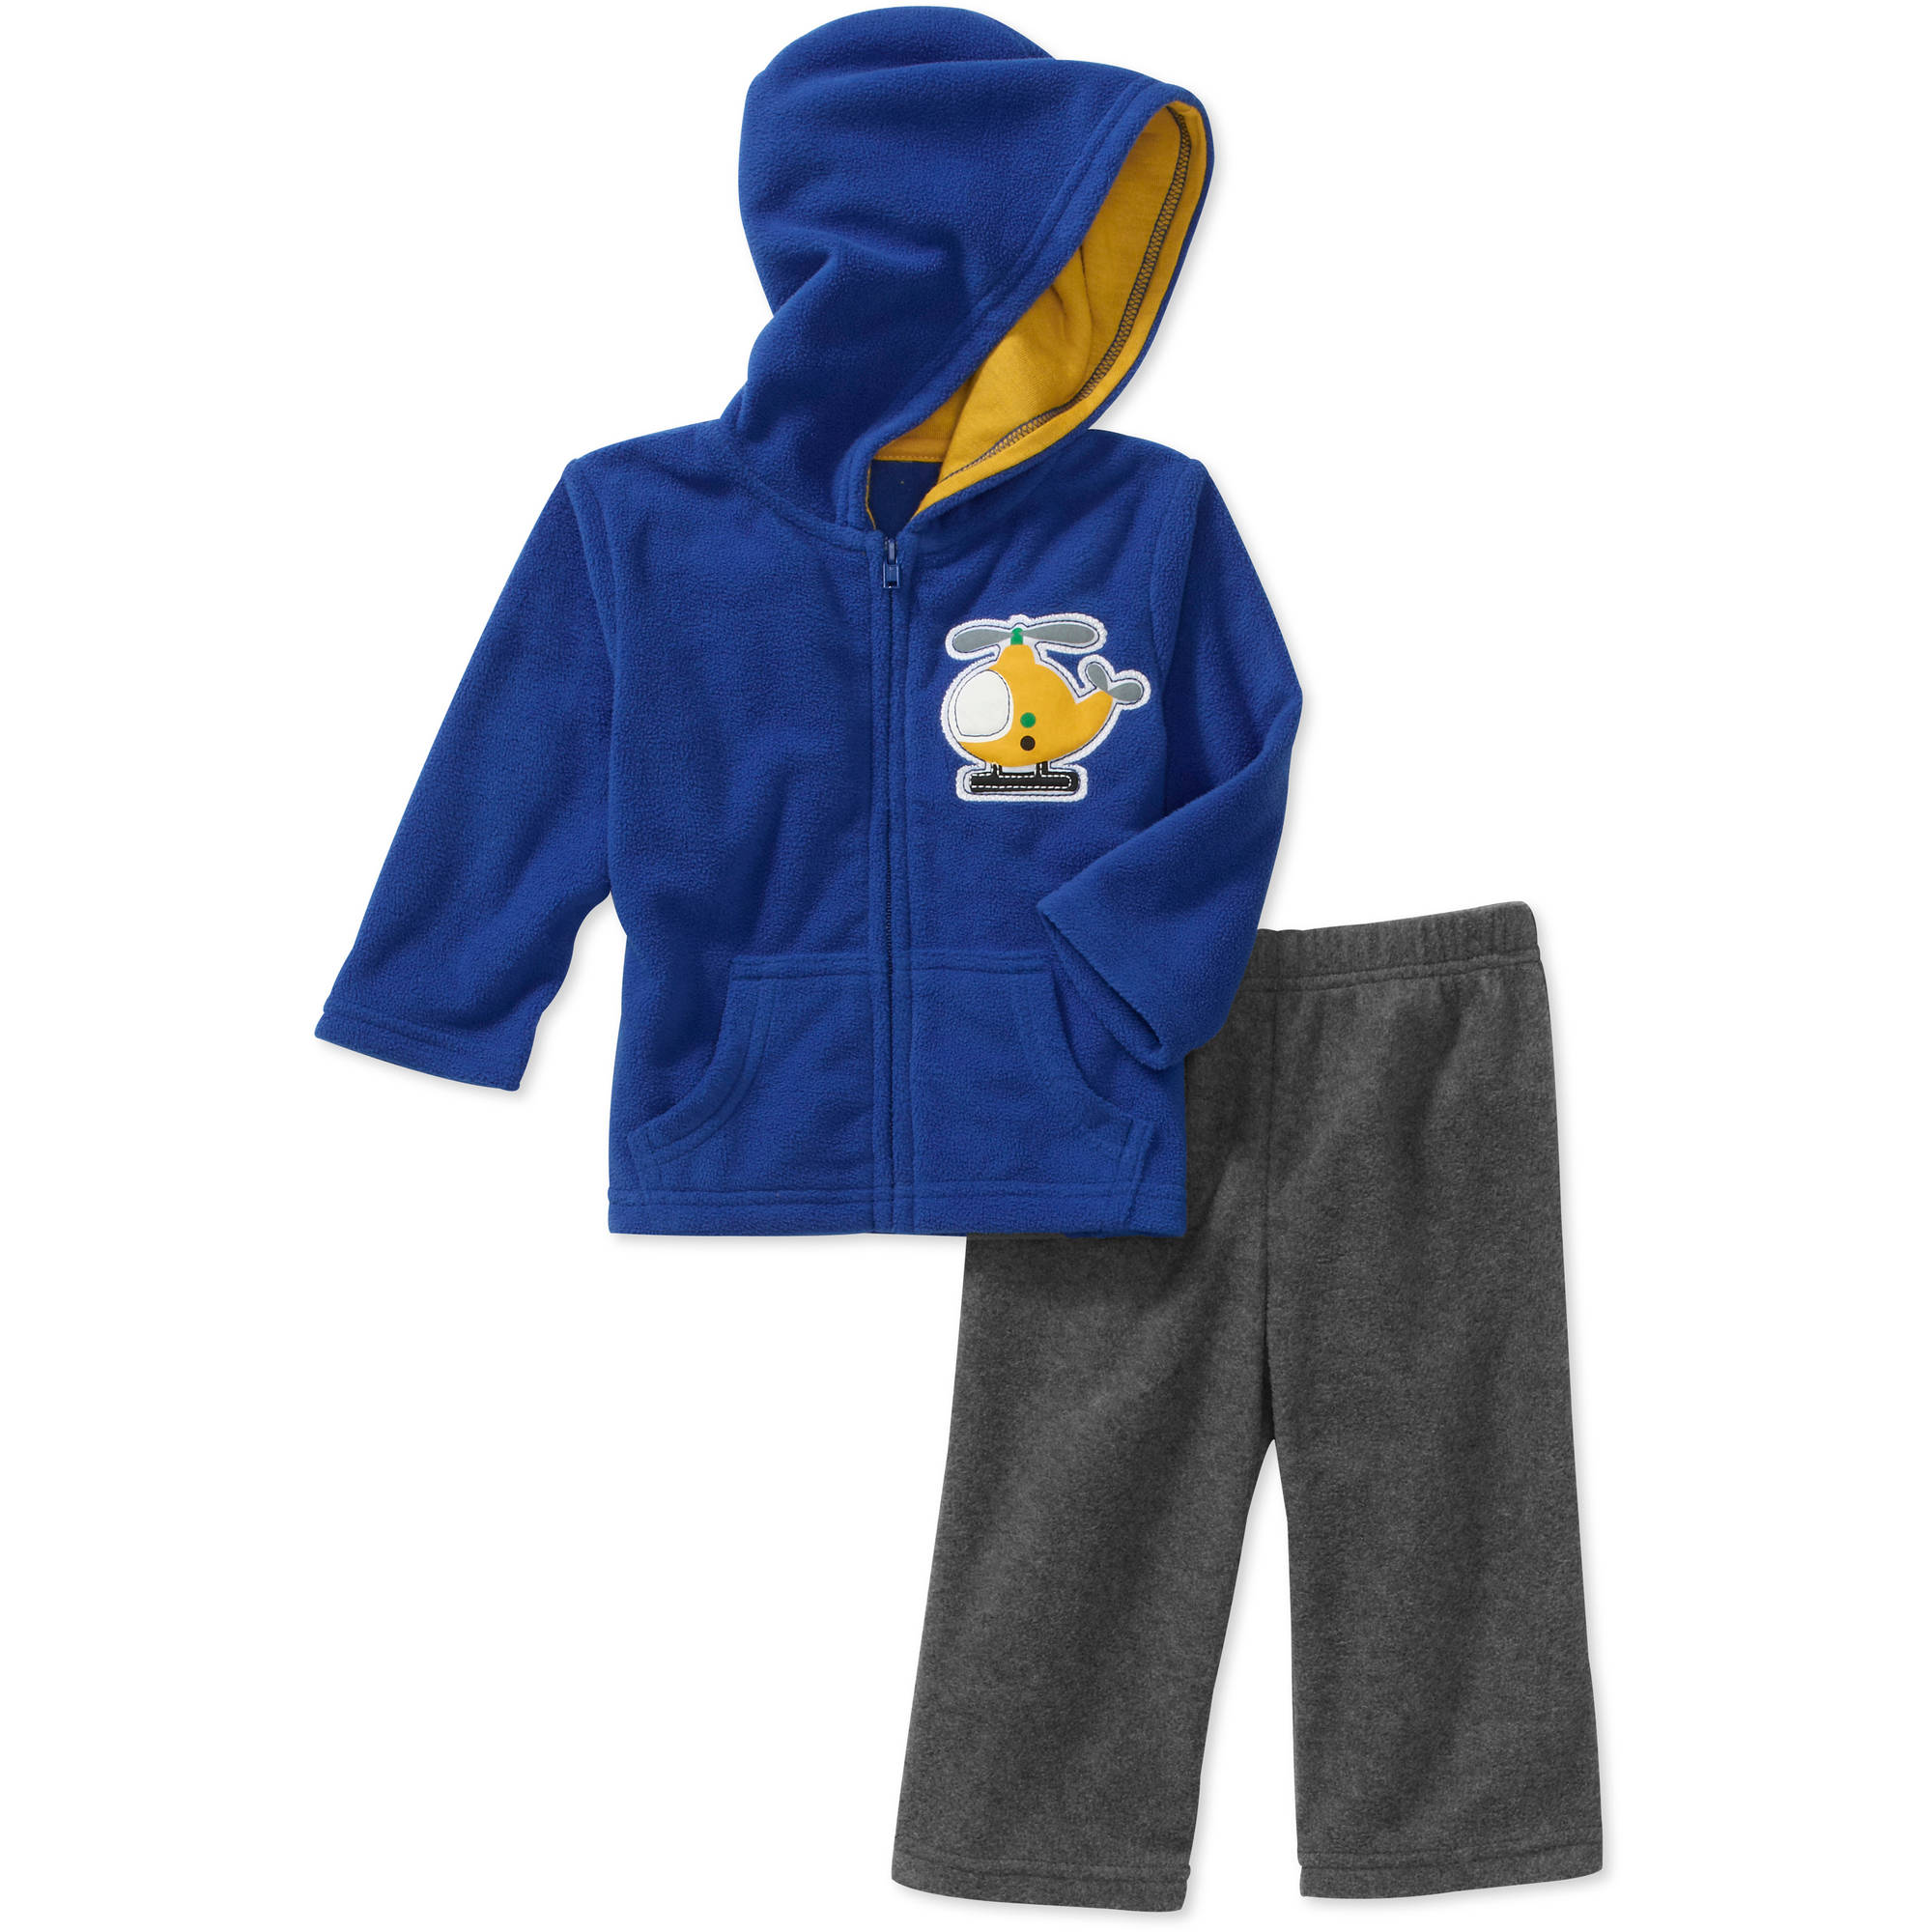 George Newborn Boys' 2-Piece Applique Hoodie and Pant Set